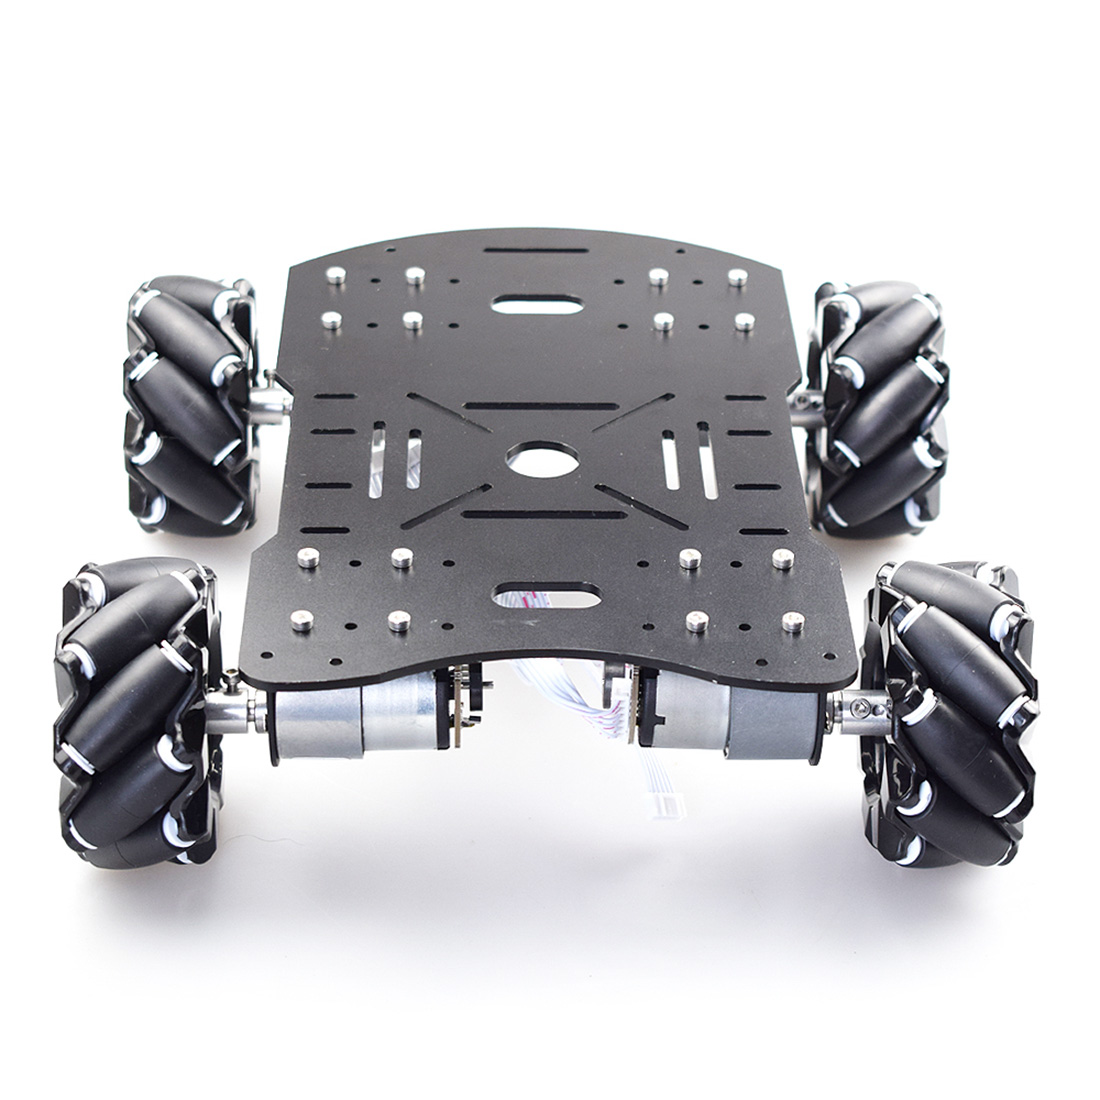 80mm Mecanum Acrylic Platform Kit Omni-Directional Mecanum Wheel Robot Car With STM32 Electronic Control (Without Power Supply)